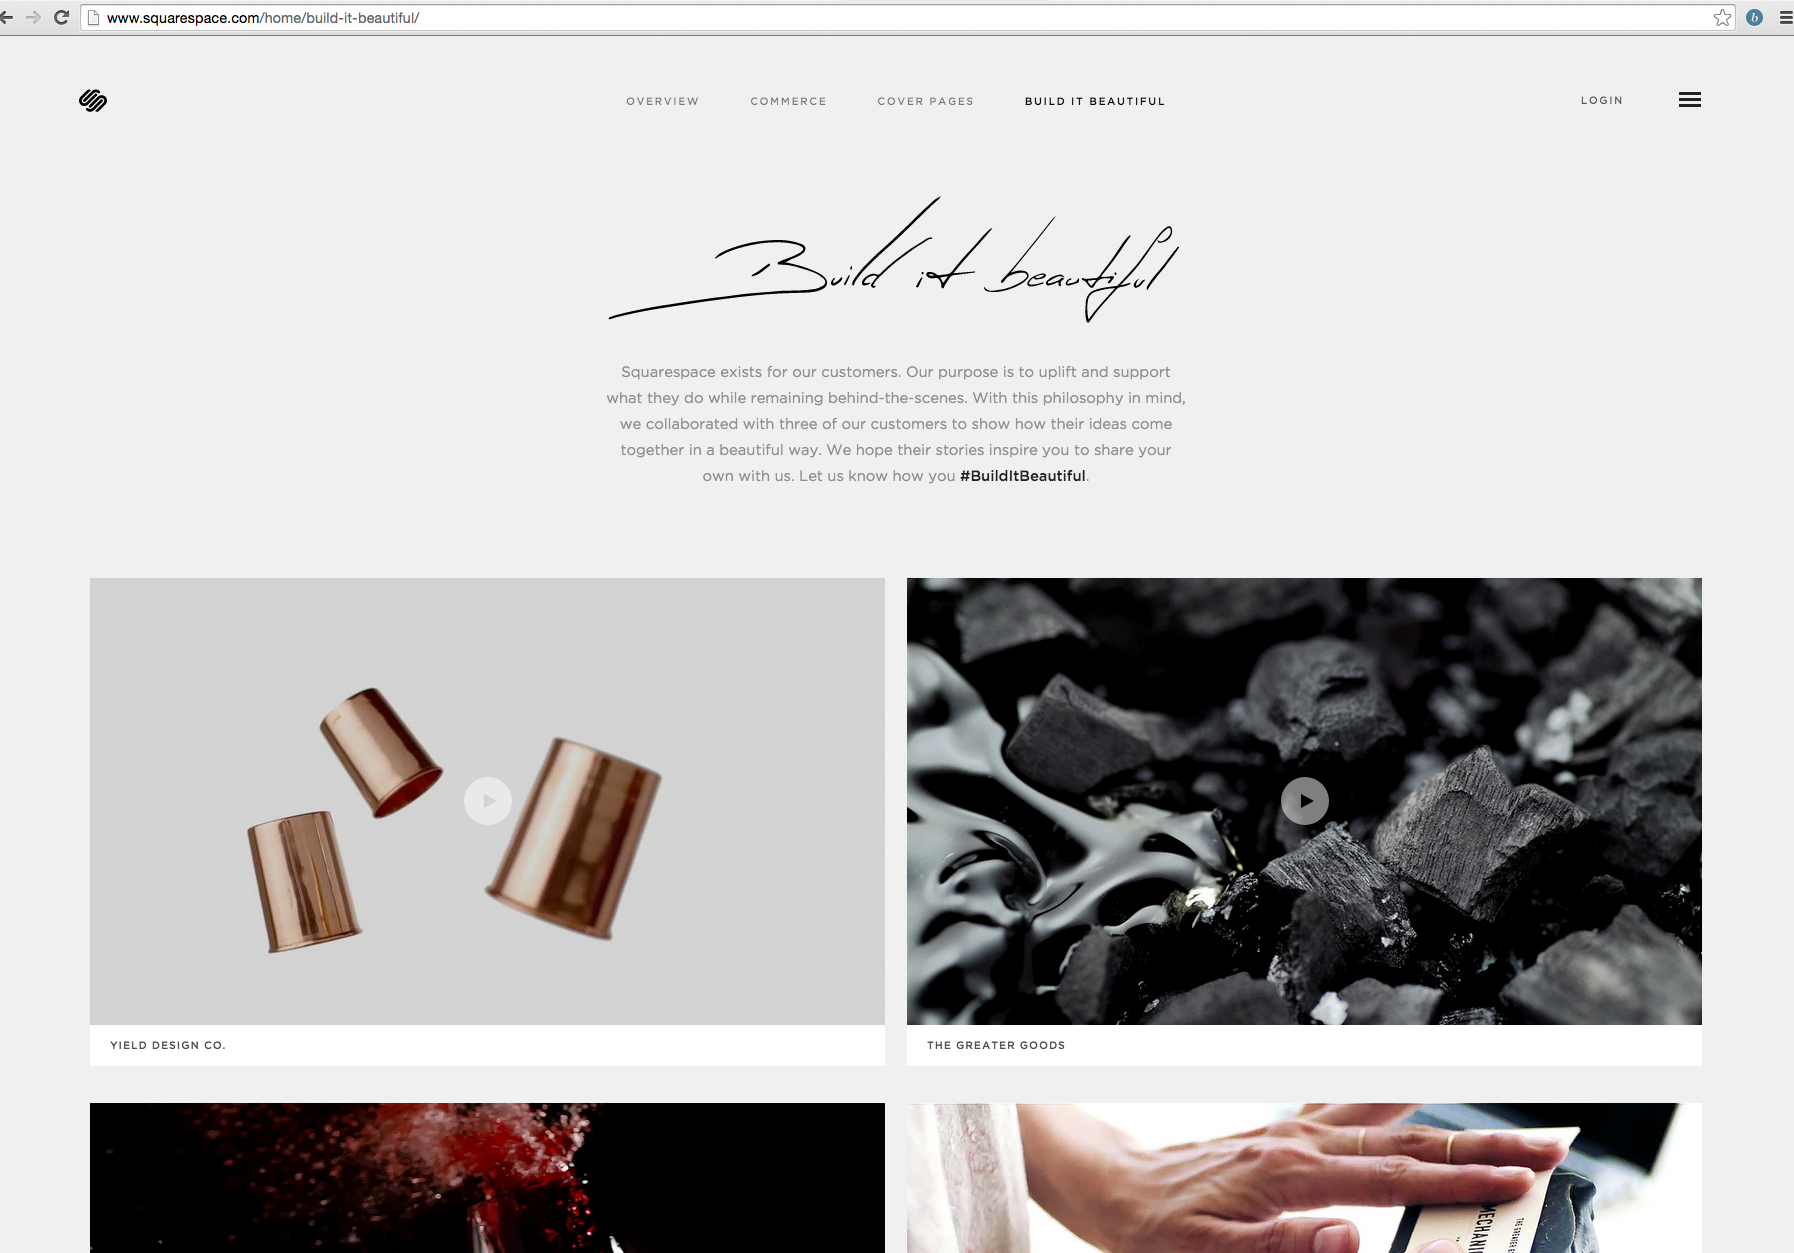 """""""Squarespace exists for our customers. Our purpose is to uplift and support what they do while remaining behind-the-scenes. With this philosophy in mind, we collaborated with three of our customers to show how their ideas come together in a beautiful way. We hope their stories inspire you to share your own with us. Let us know how you #BuildItBeautiful."""""""